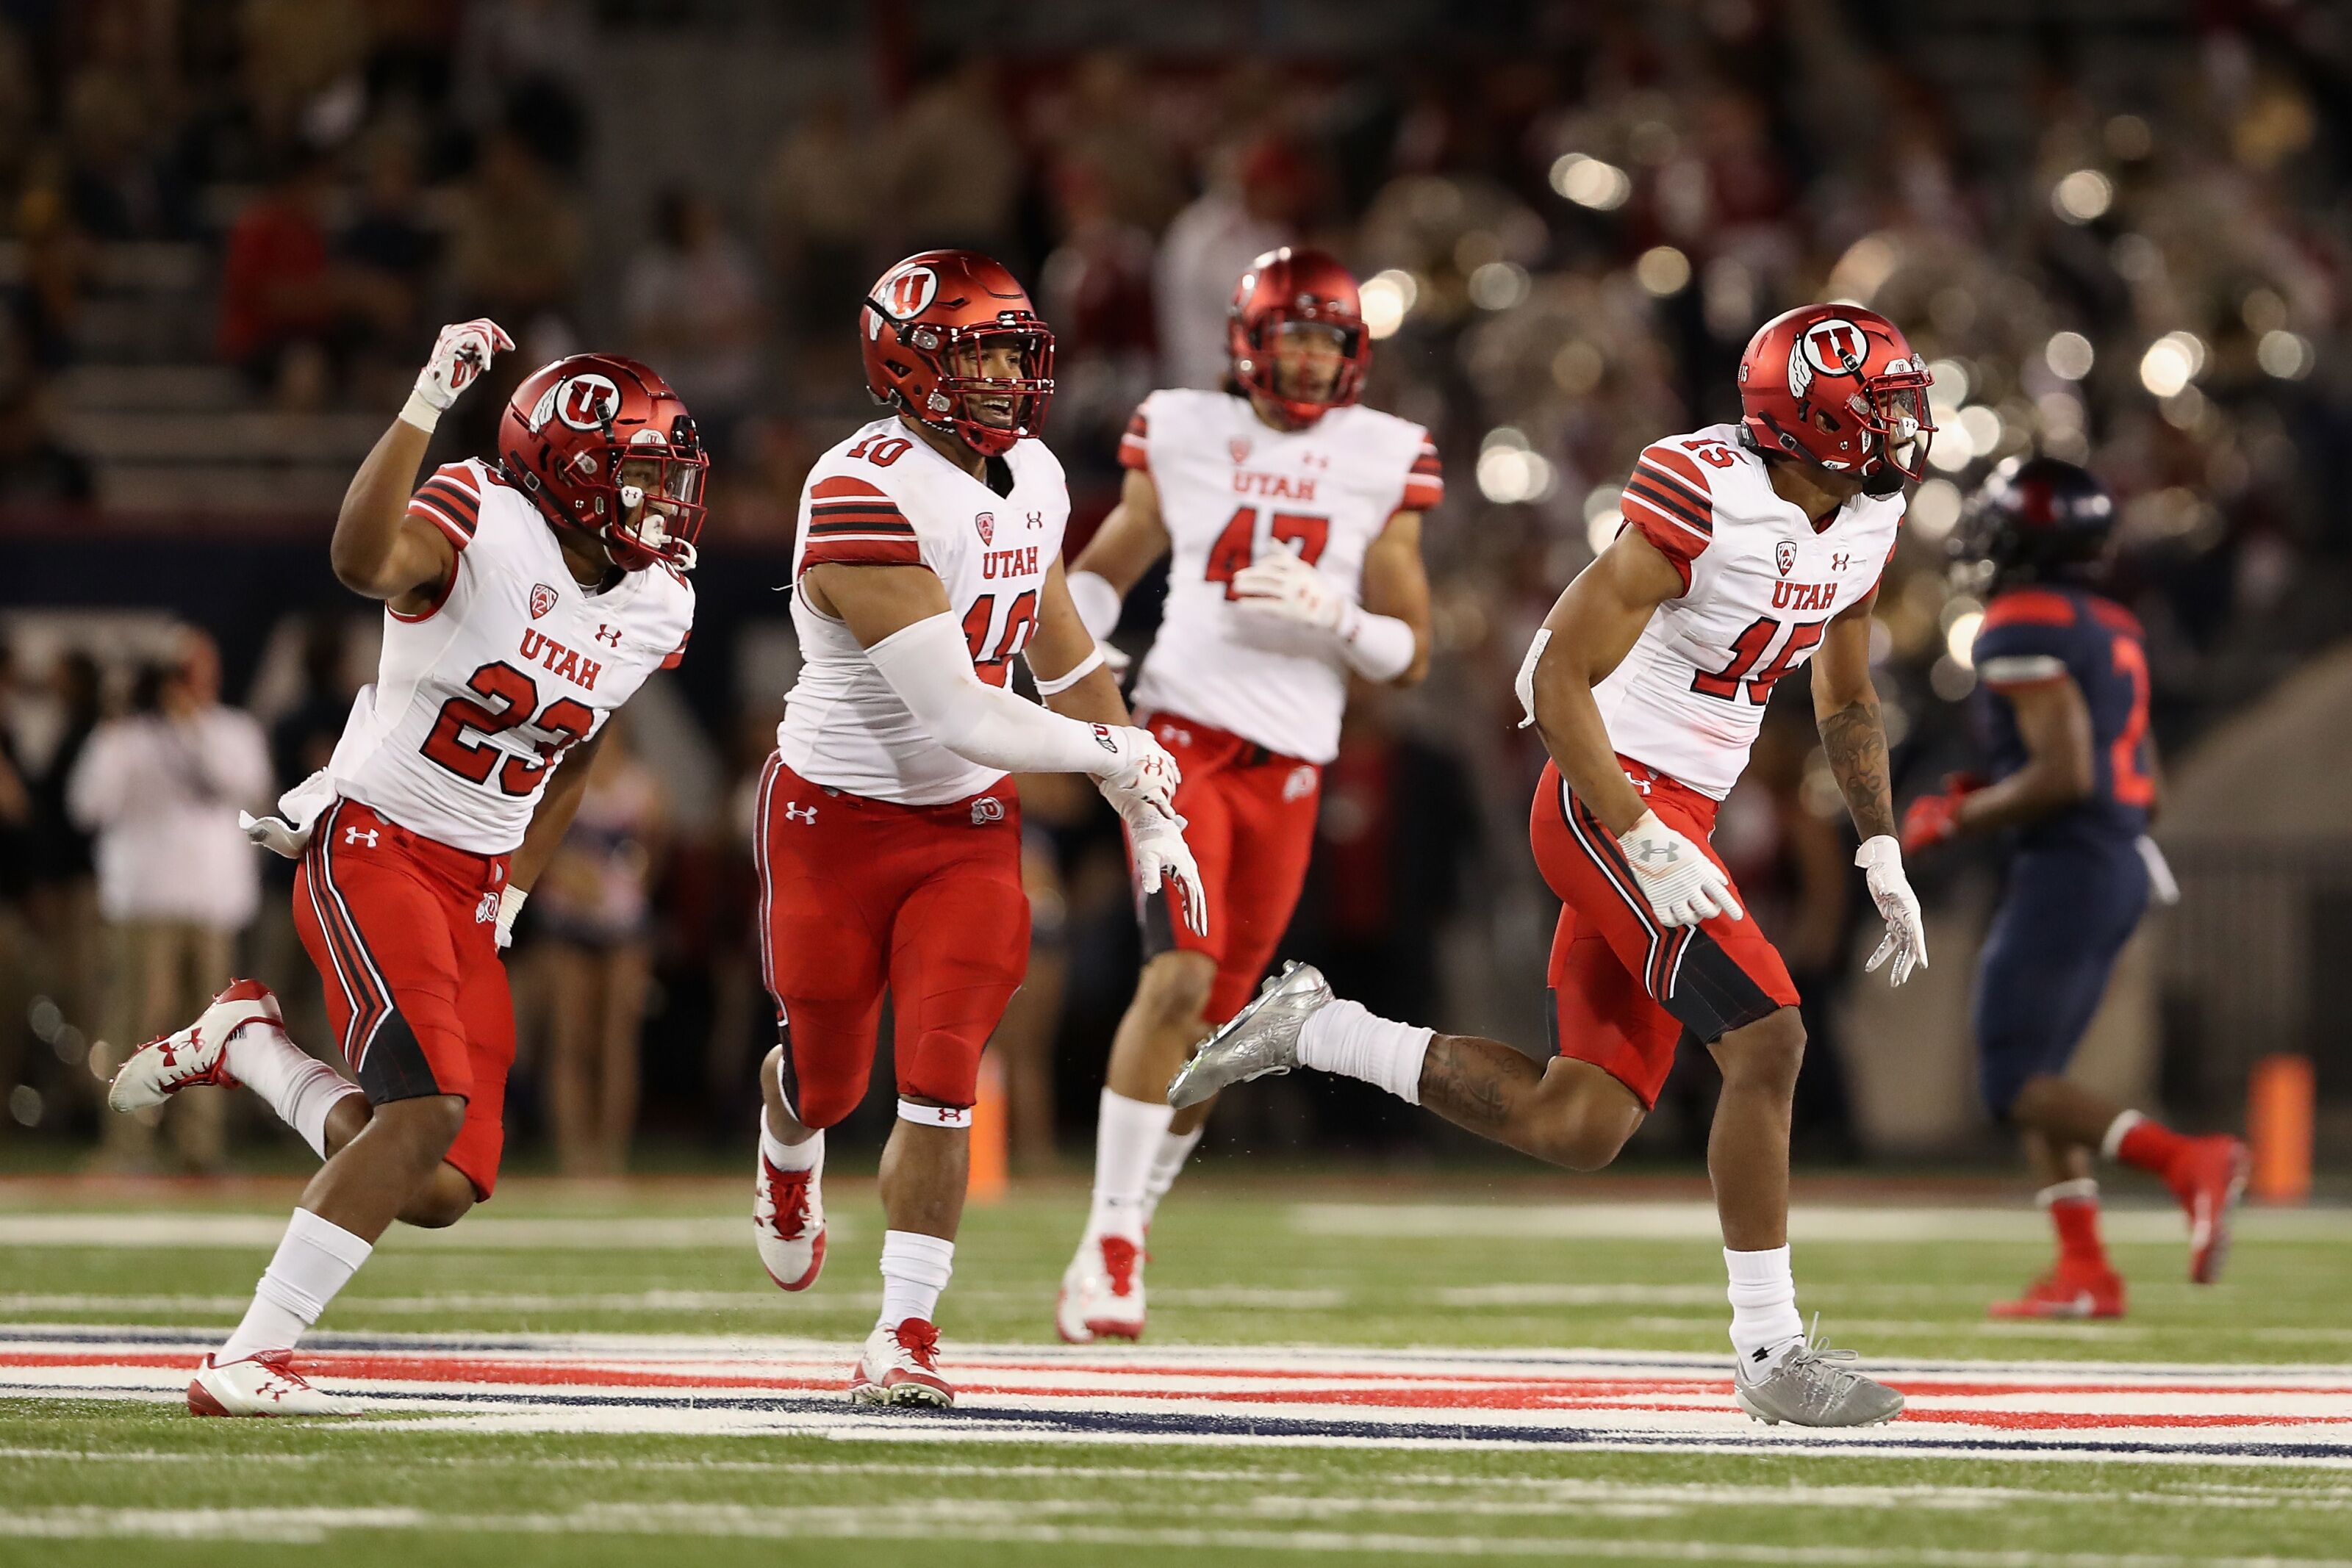 Our experts share everything you need to know about Utah football for the Utes 2018 season